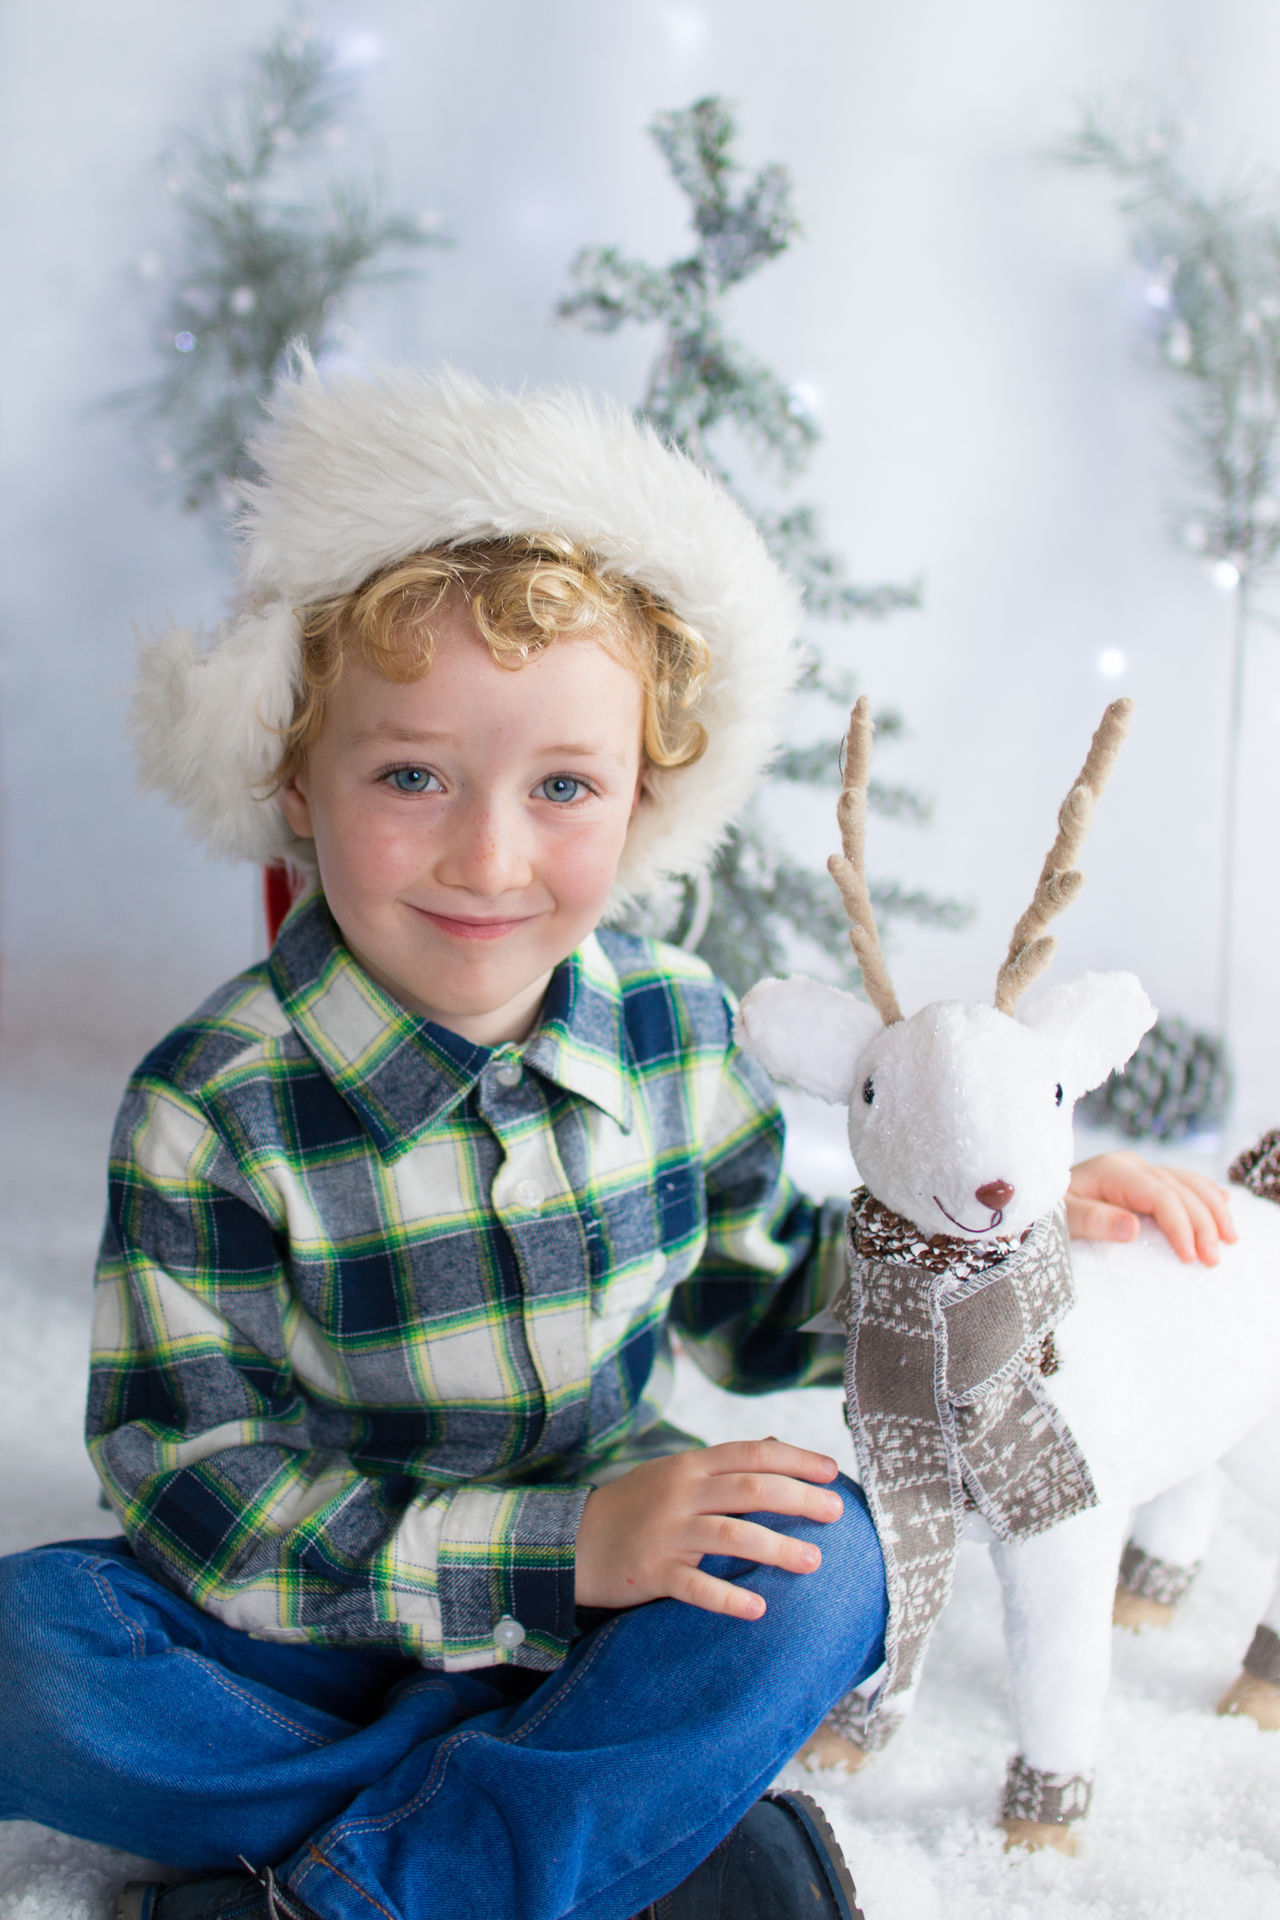 winter friends Boy Smile Boys Childhood Christmas Christmas Christmas Fun Cute Cute Christmas Day Joy Outdoors People Portrait Snow Streamzoofamily Toy Deer Winter Winter Winter Joy Winter Portrait Winter Wonder